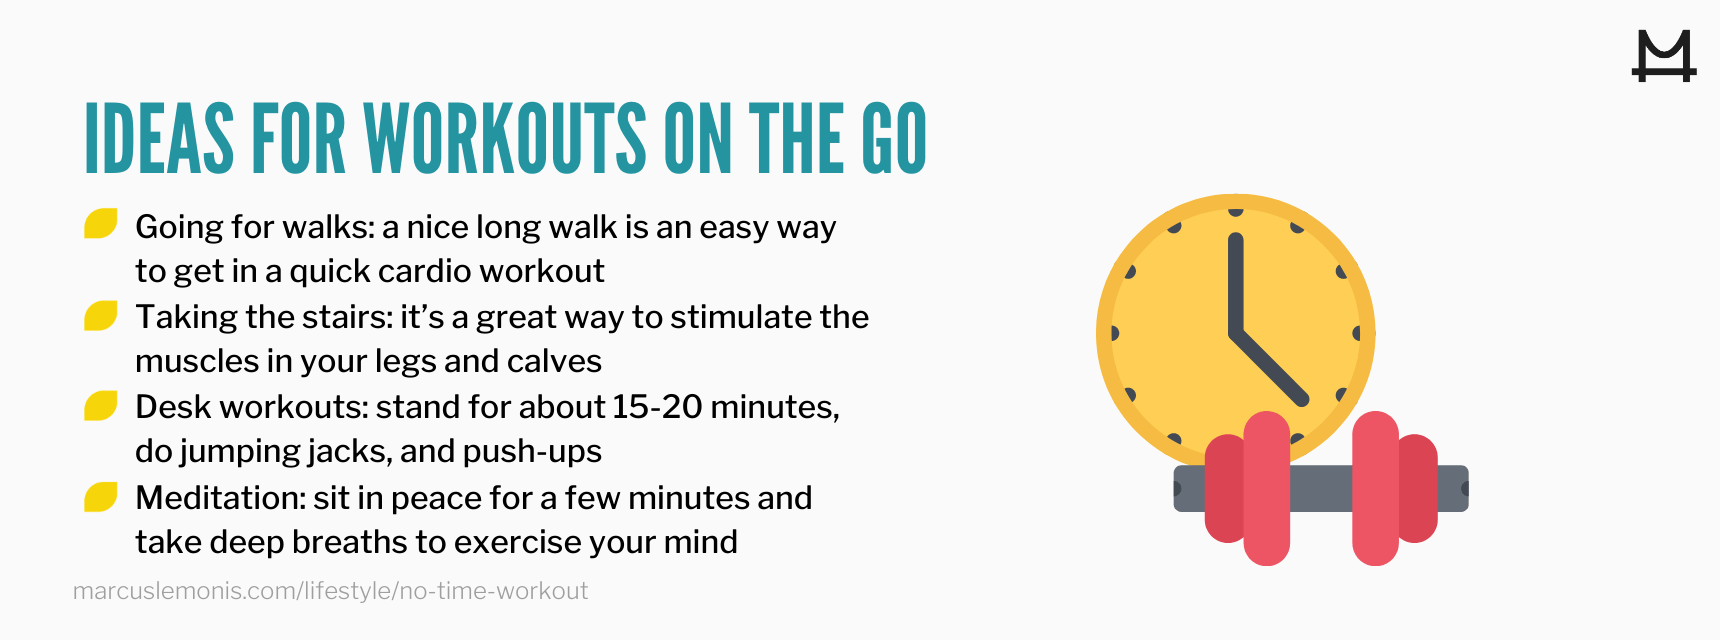 List of ideas for fun workouts on the go